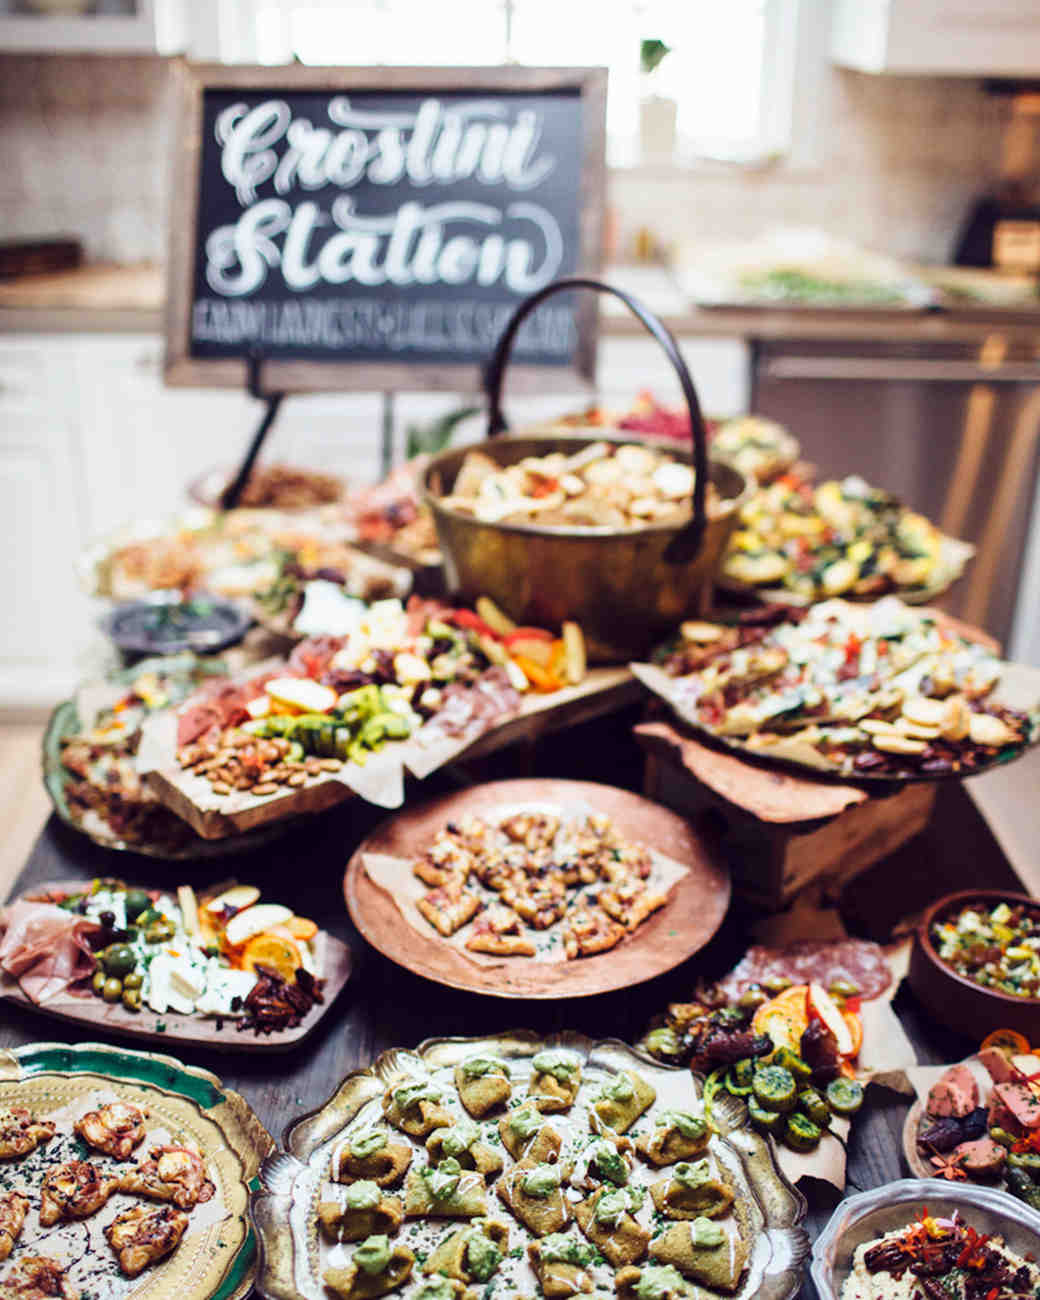 25 unexpected wedding food ideas your guests will love | martha